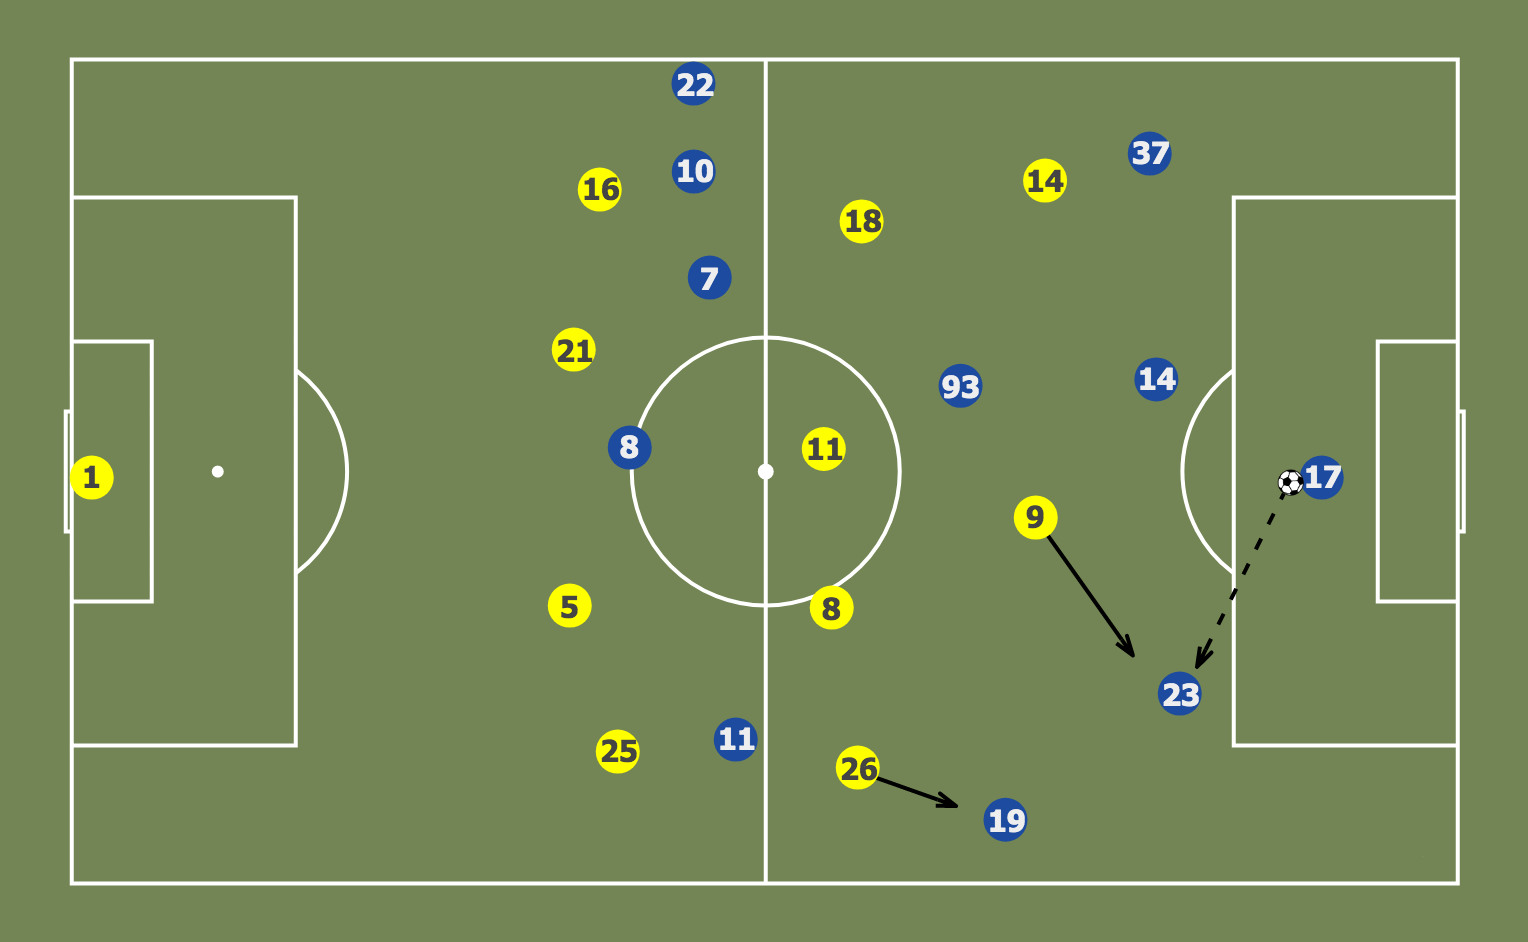 Zlatan is number 9 and Alvarez is 26 for the Galaxy (yellow), Vega is 17 and Jungworth is 23 for San Jose (blue).